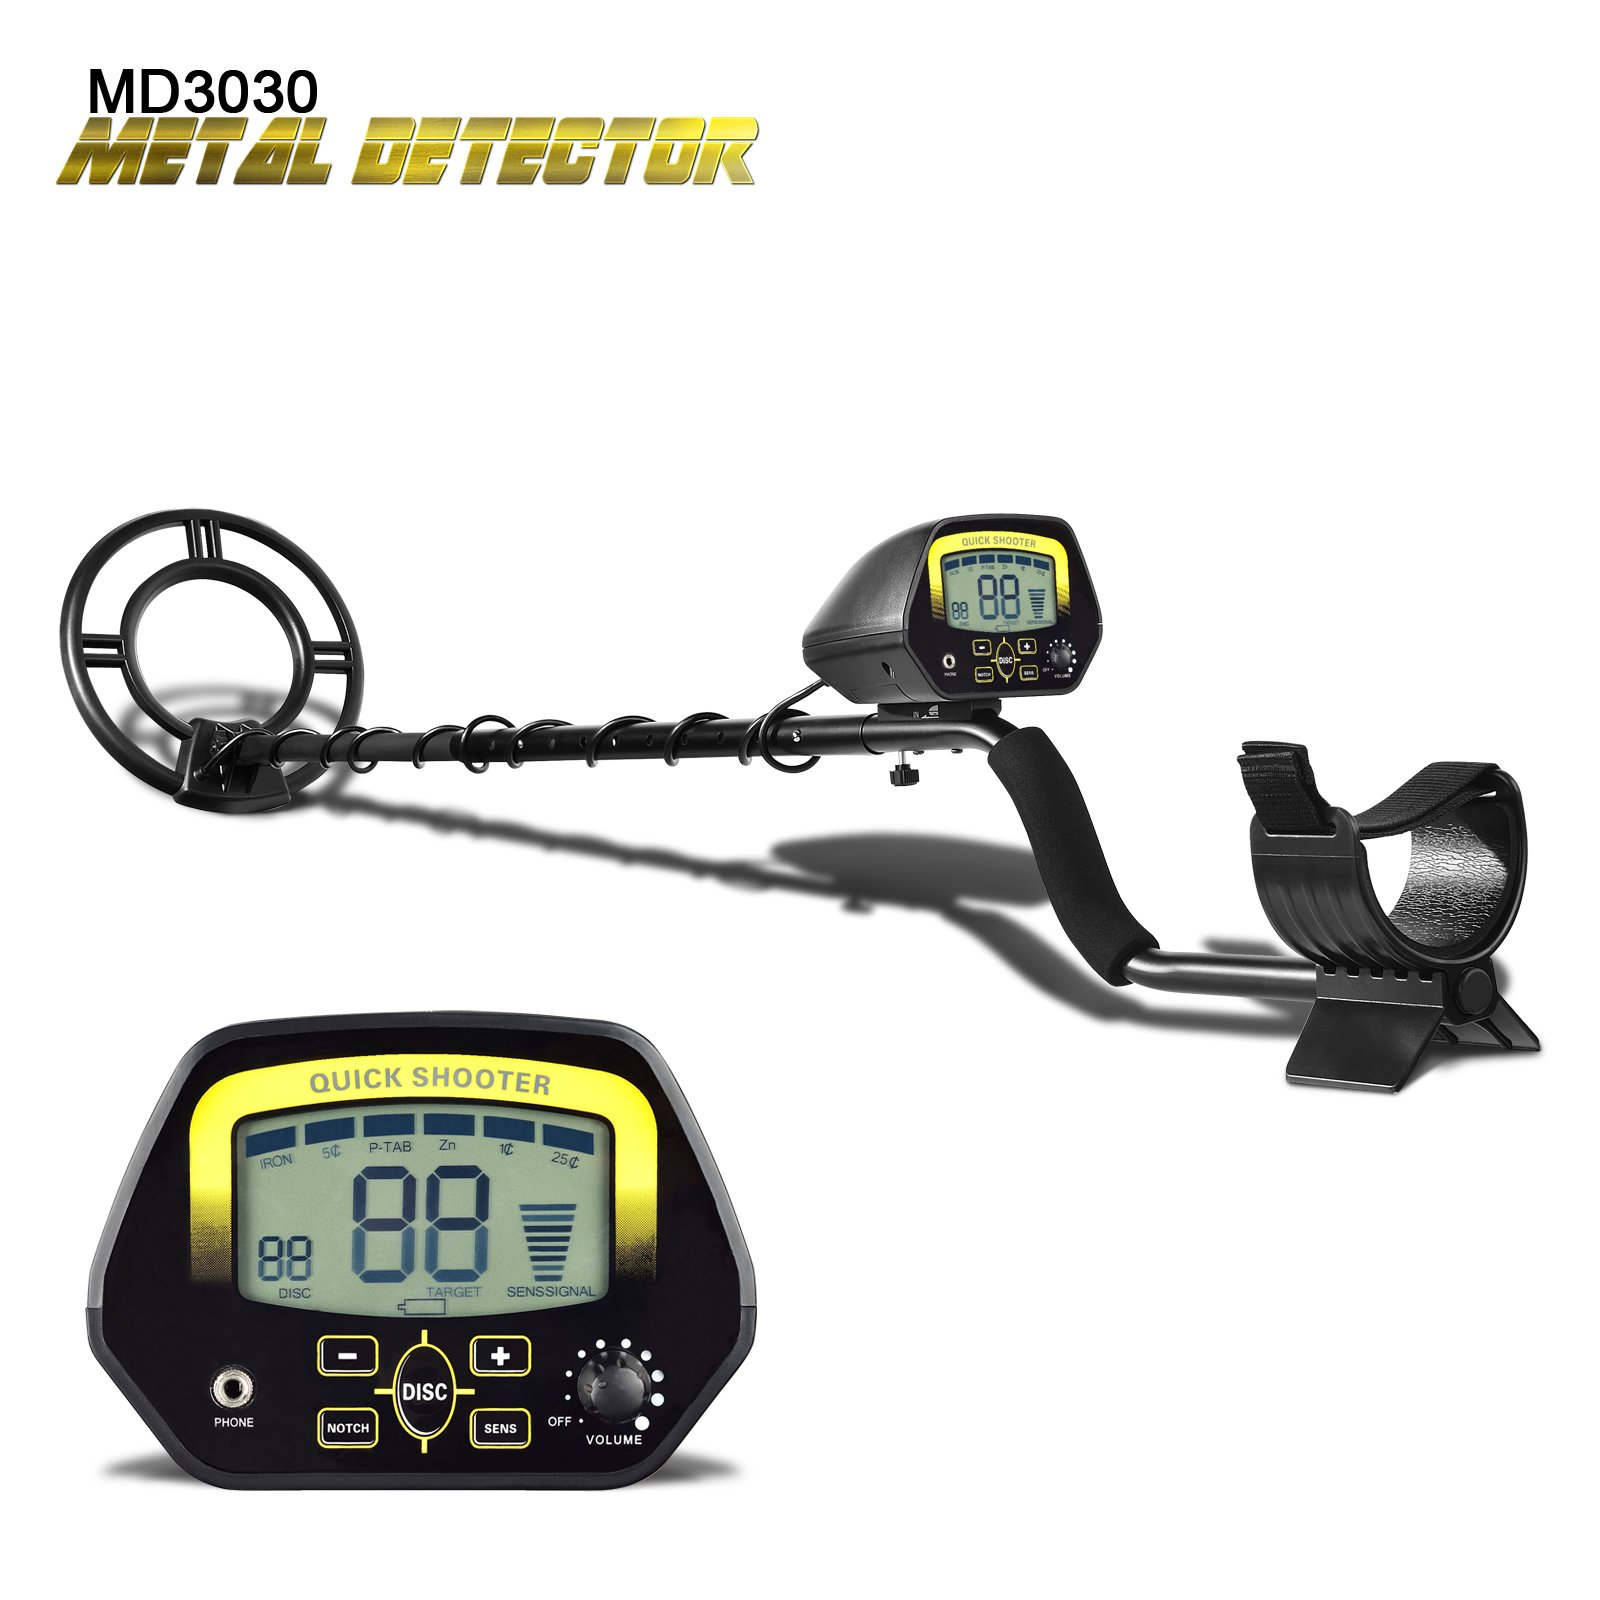 SHUOGOU Metal Detector MD3030- Lightweight Professional Detectors Underground Treasure Hunter LCD Display Gold and Jewelry Hunting Under Shallow Water by SHUOGOU